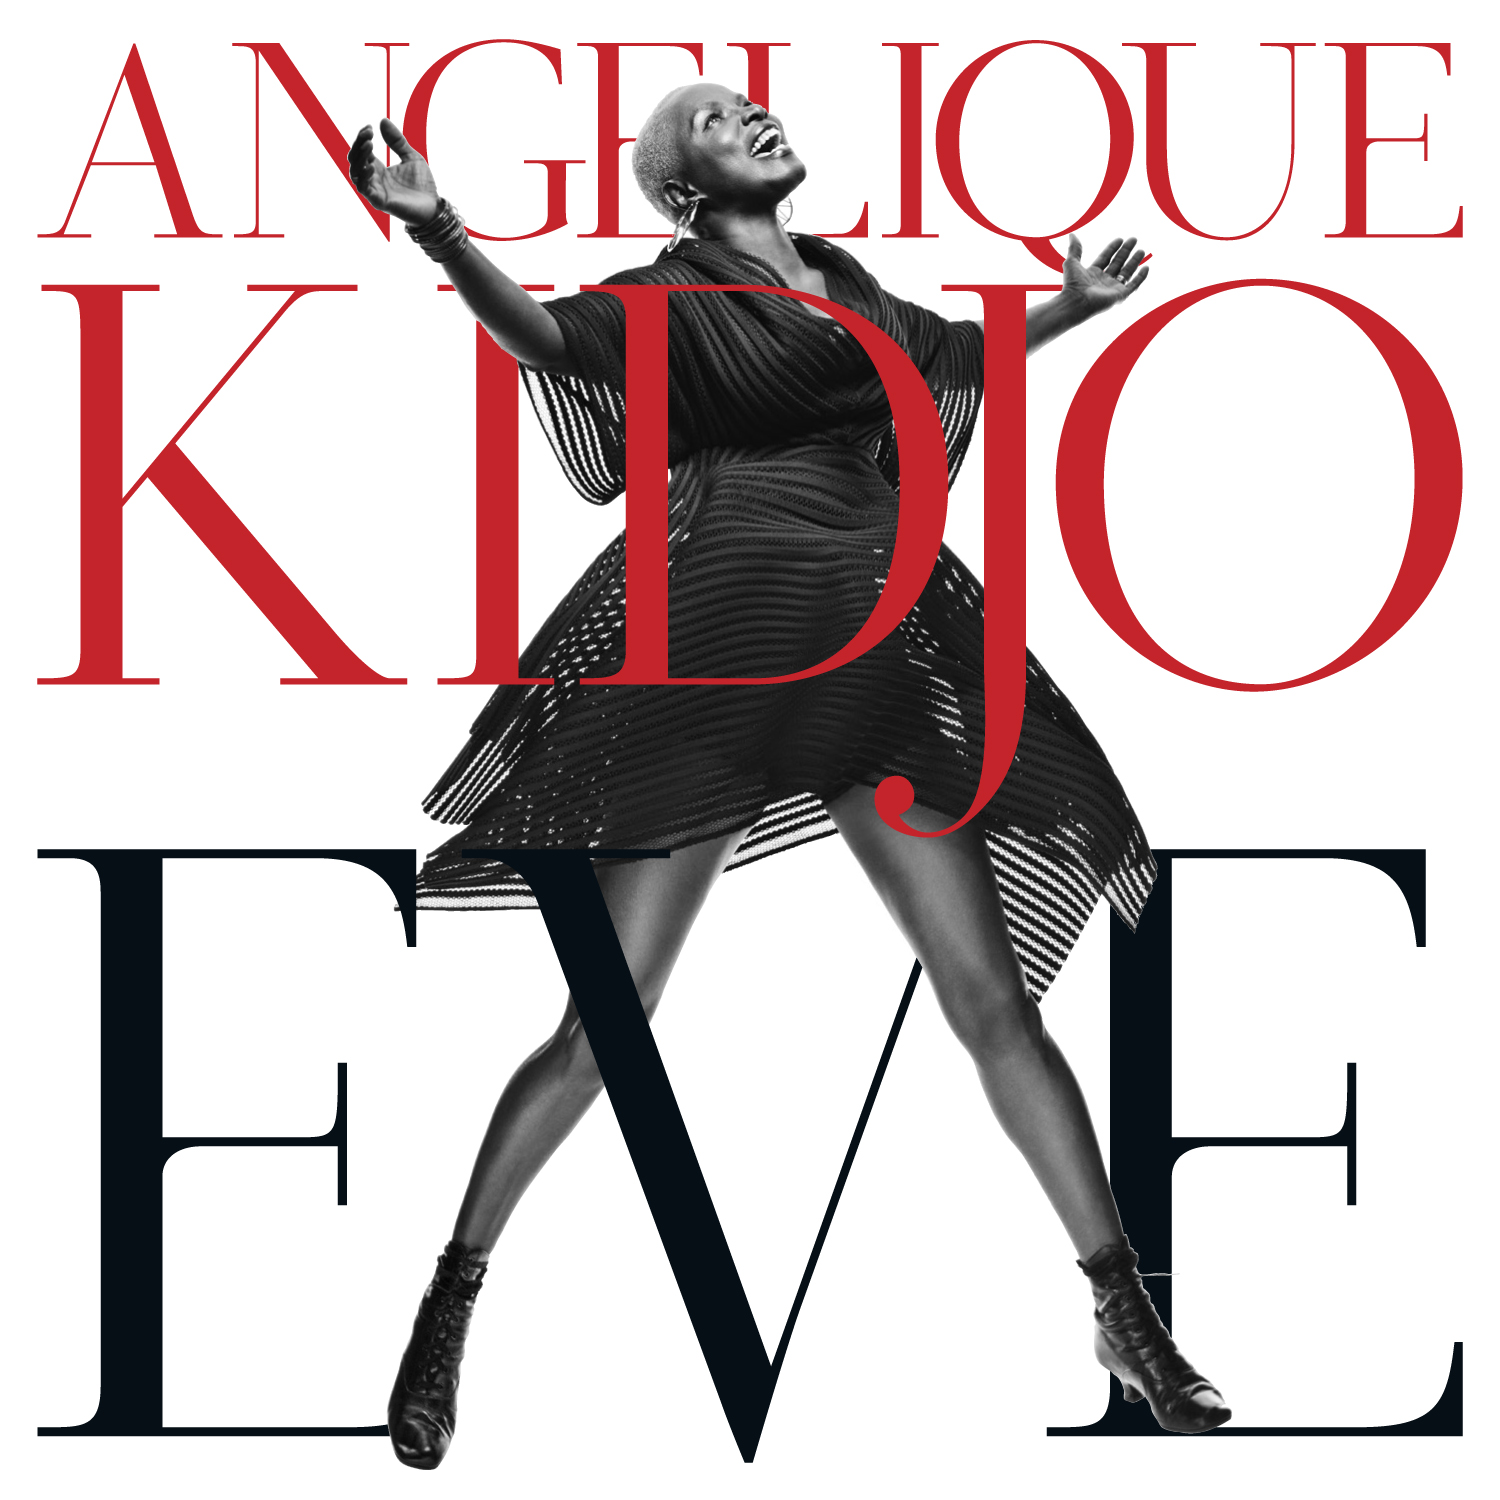 JUST FINISHED THE NEW ALBUM COVER FOR THE LEGENDARY (& GRAMMY WINNING!) ANGELIQUE KIDJO